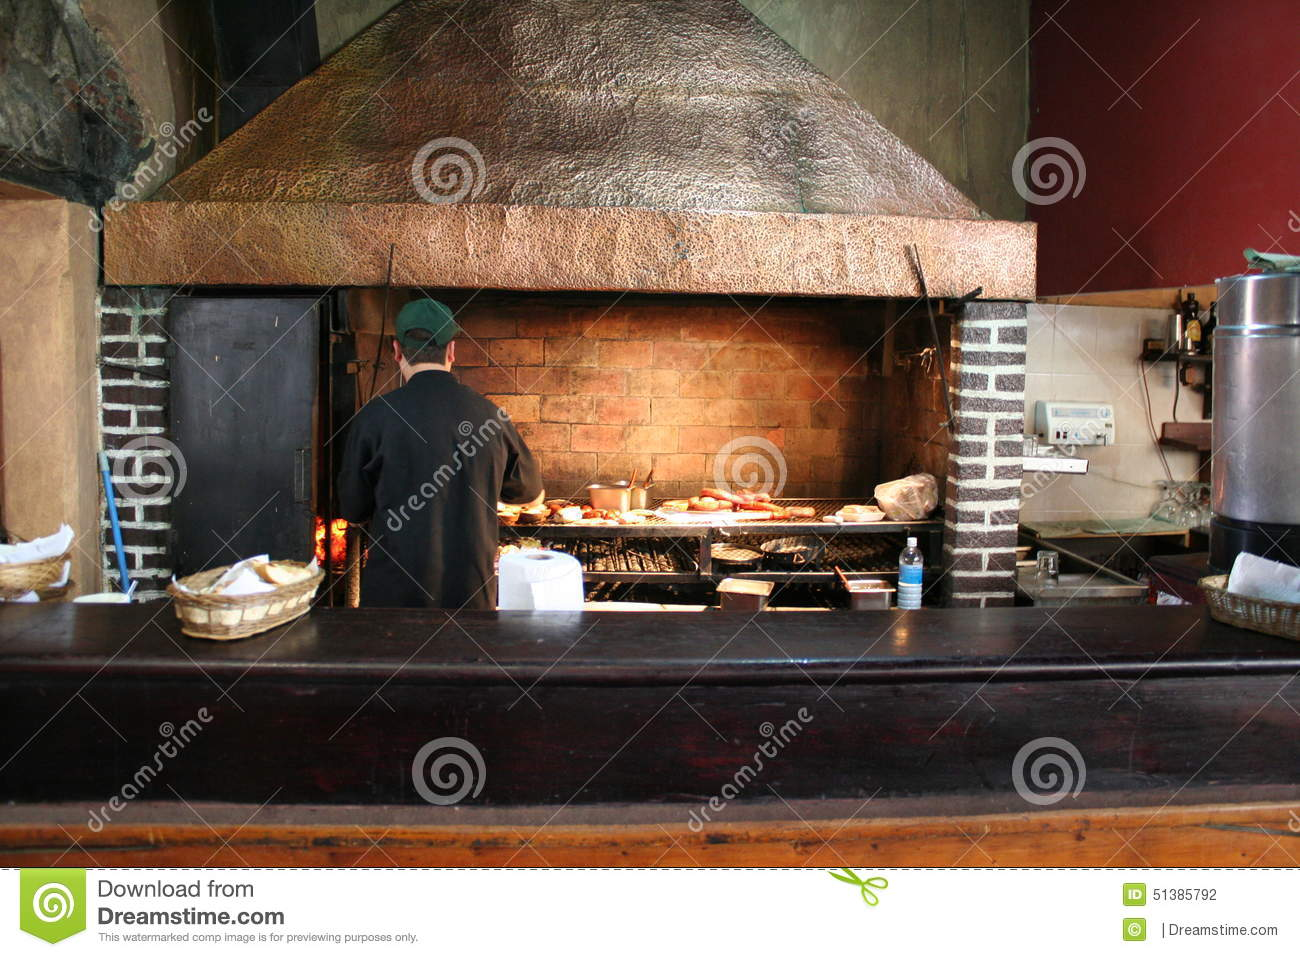 Open aire grill in antigua guatemala restaurant stock photo image 51385792 - Charcoal grill restaurant ...